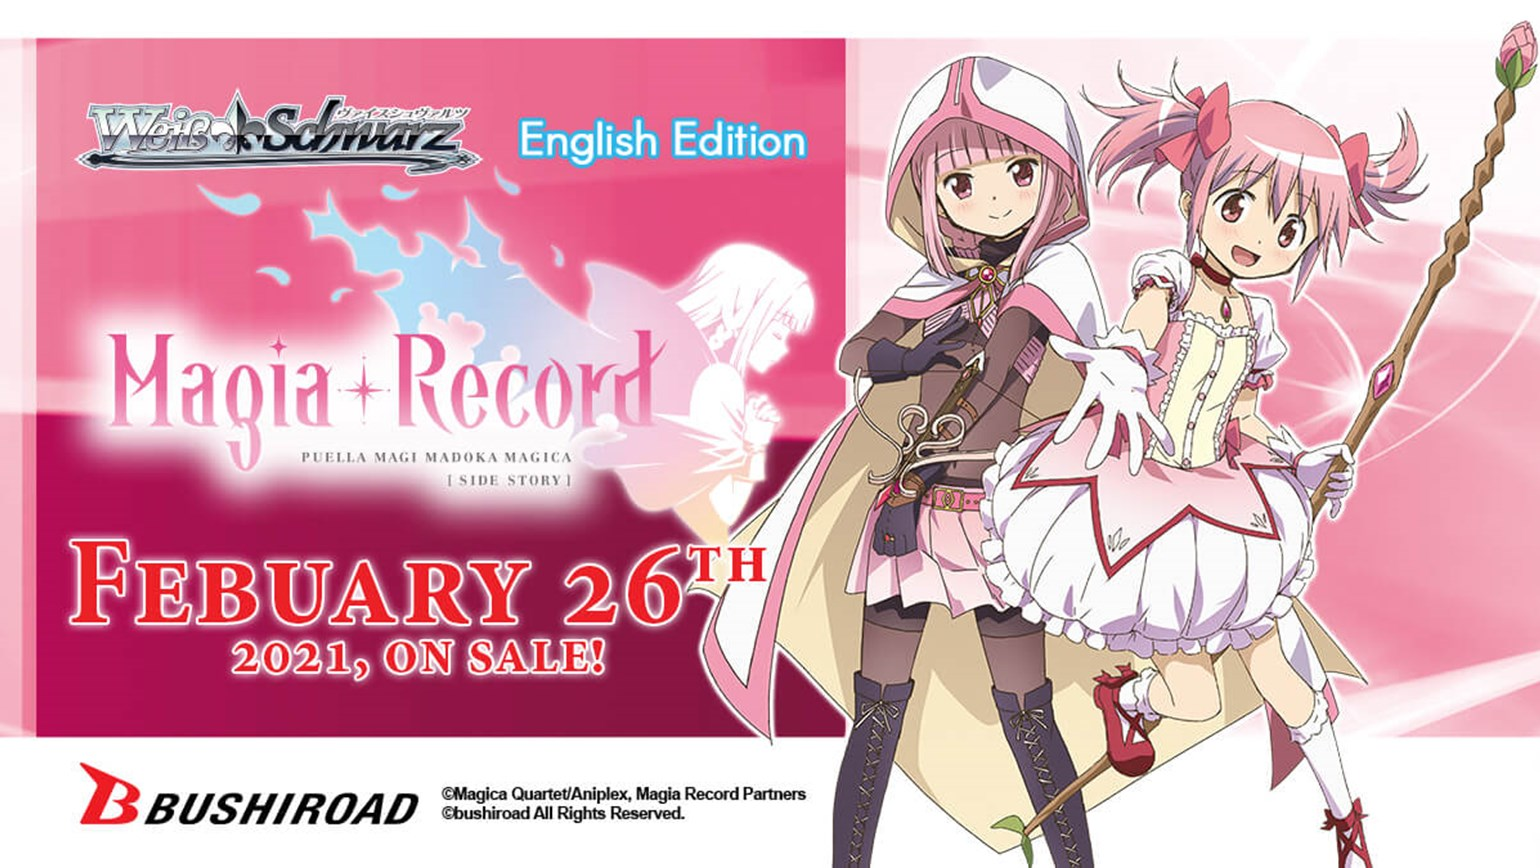 Weiss Schwarz: Magia Record: Puella Magi Madoka Magica Side Story On Sale February 26th!